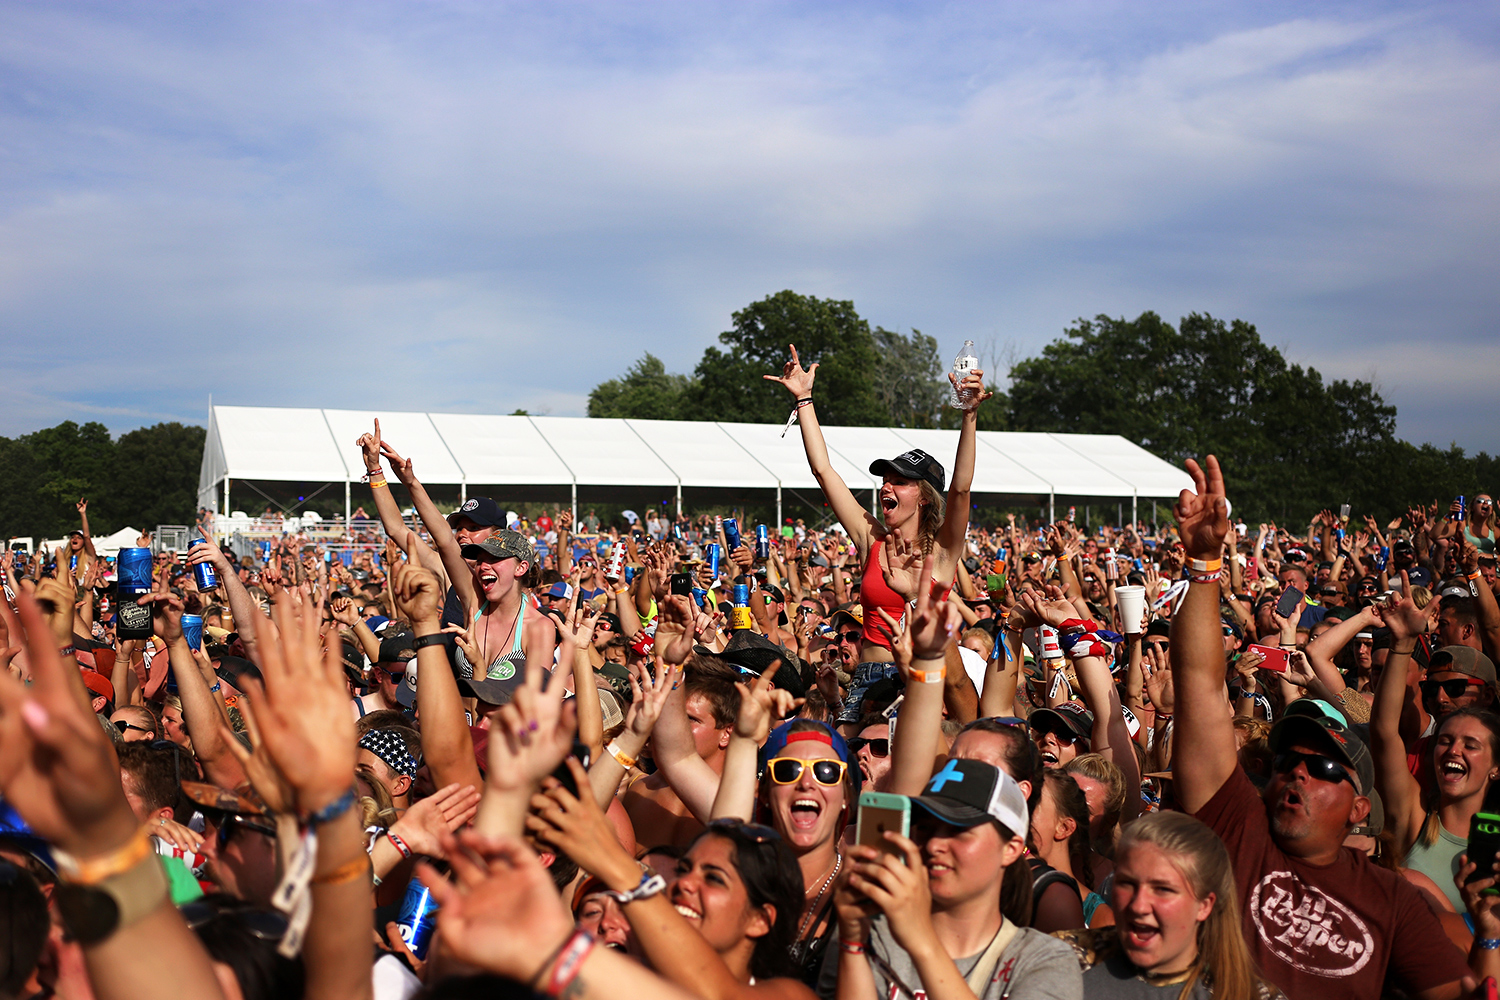 3 Dead From Carbon Monoxide Poisoning Inside Camper at Faster Horses Festival in Michigan